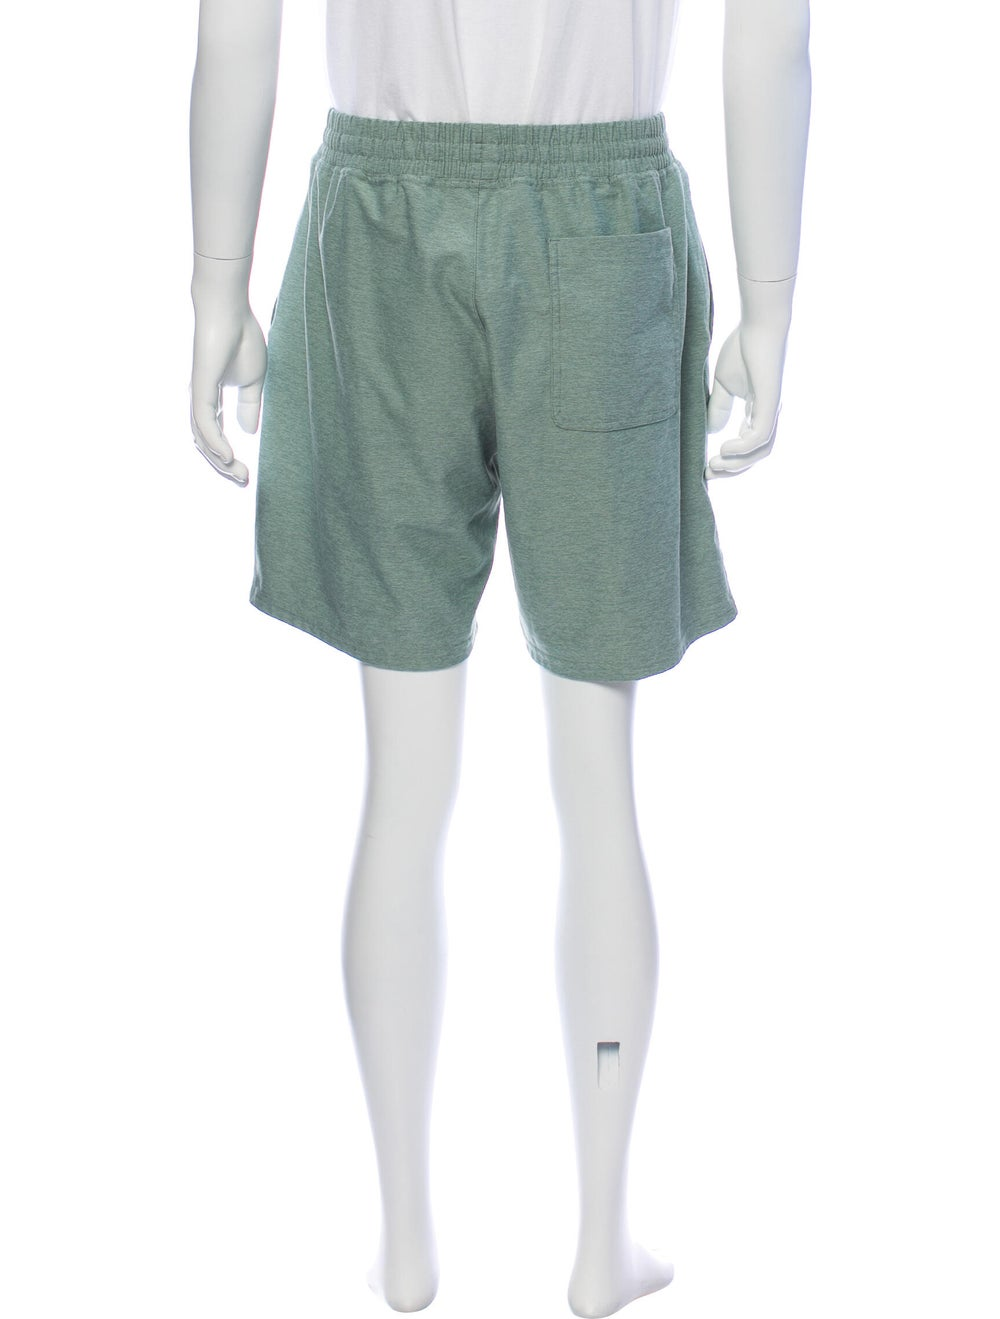 Outdoor Voices Shorts Green - image 3